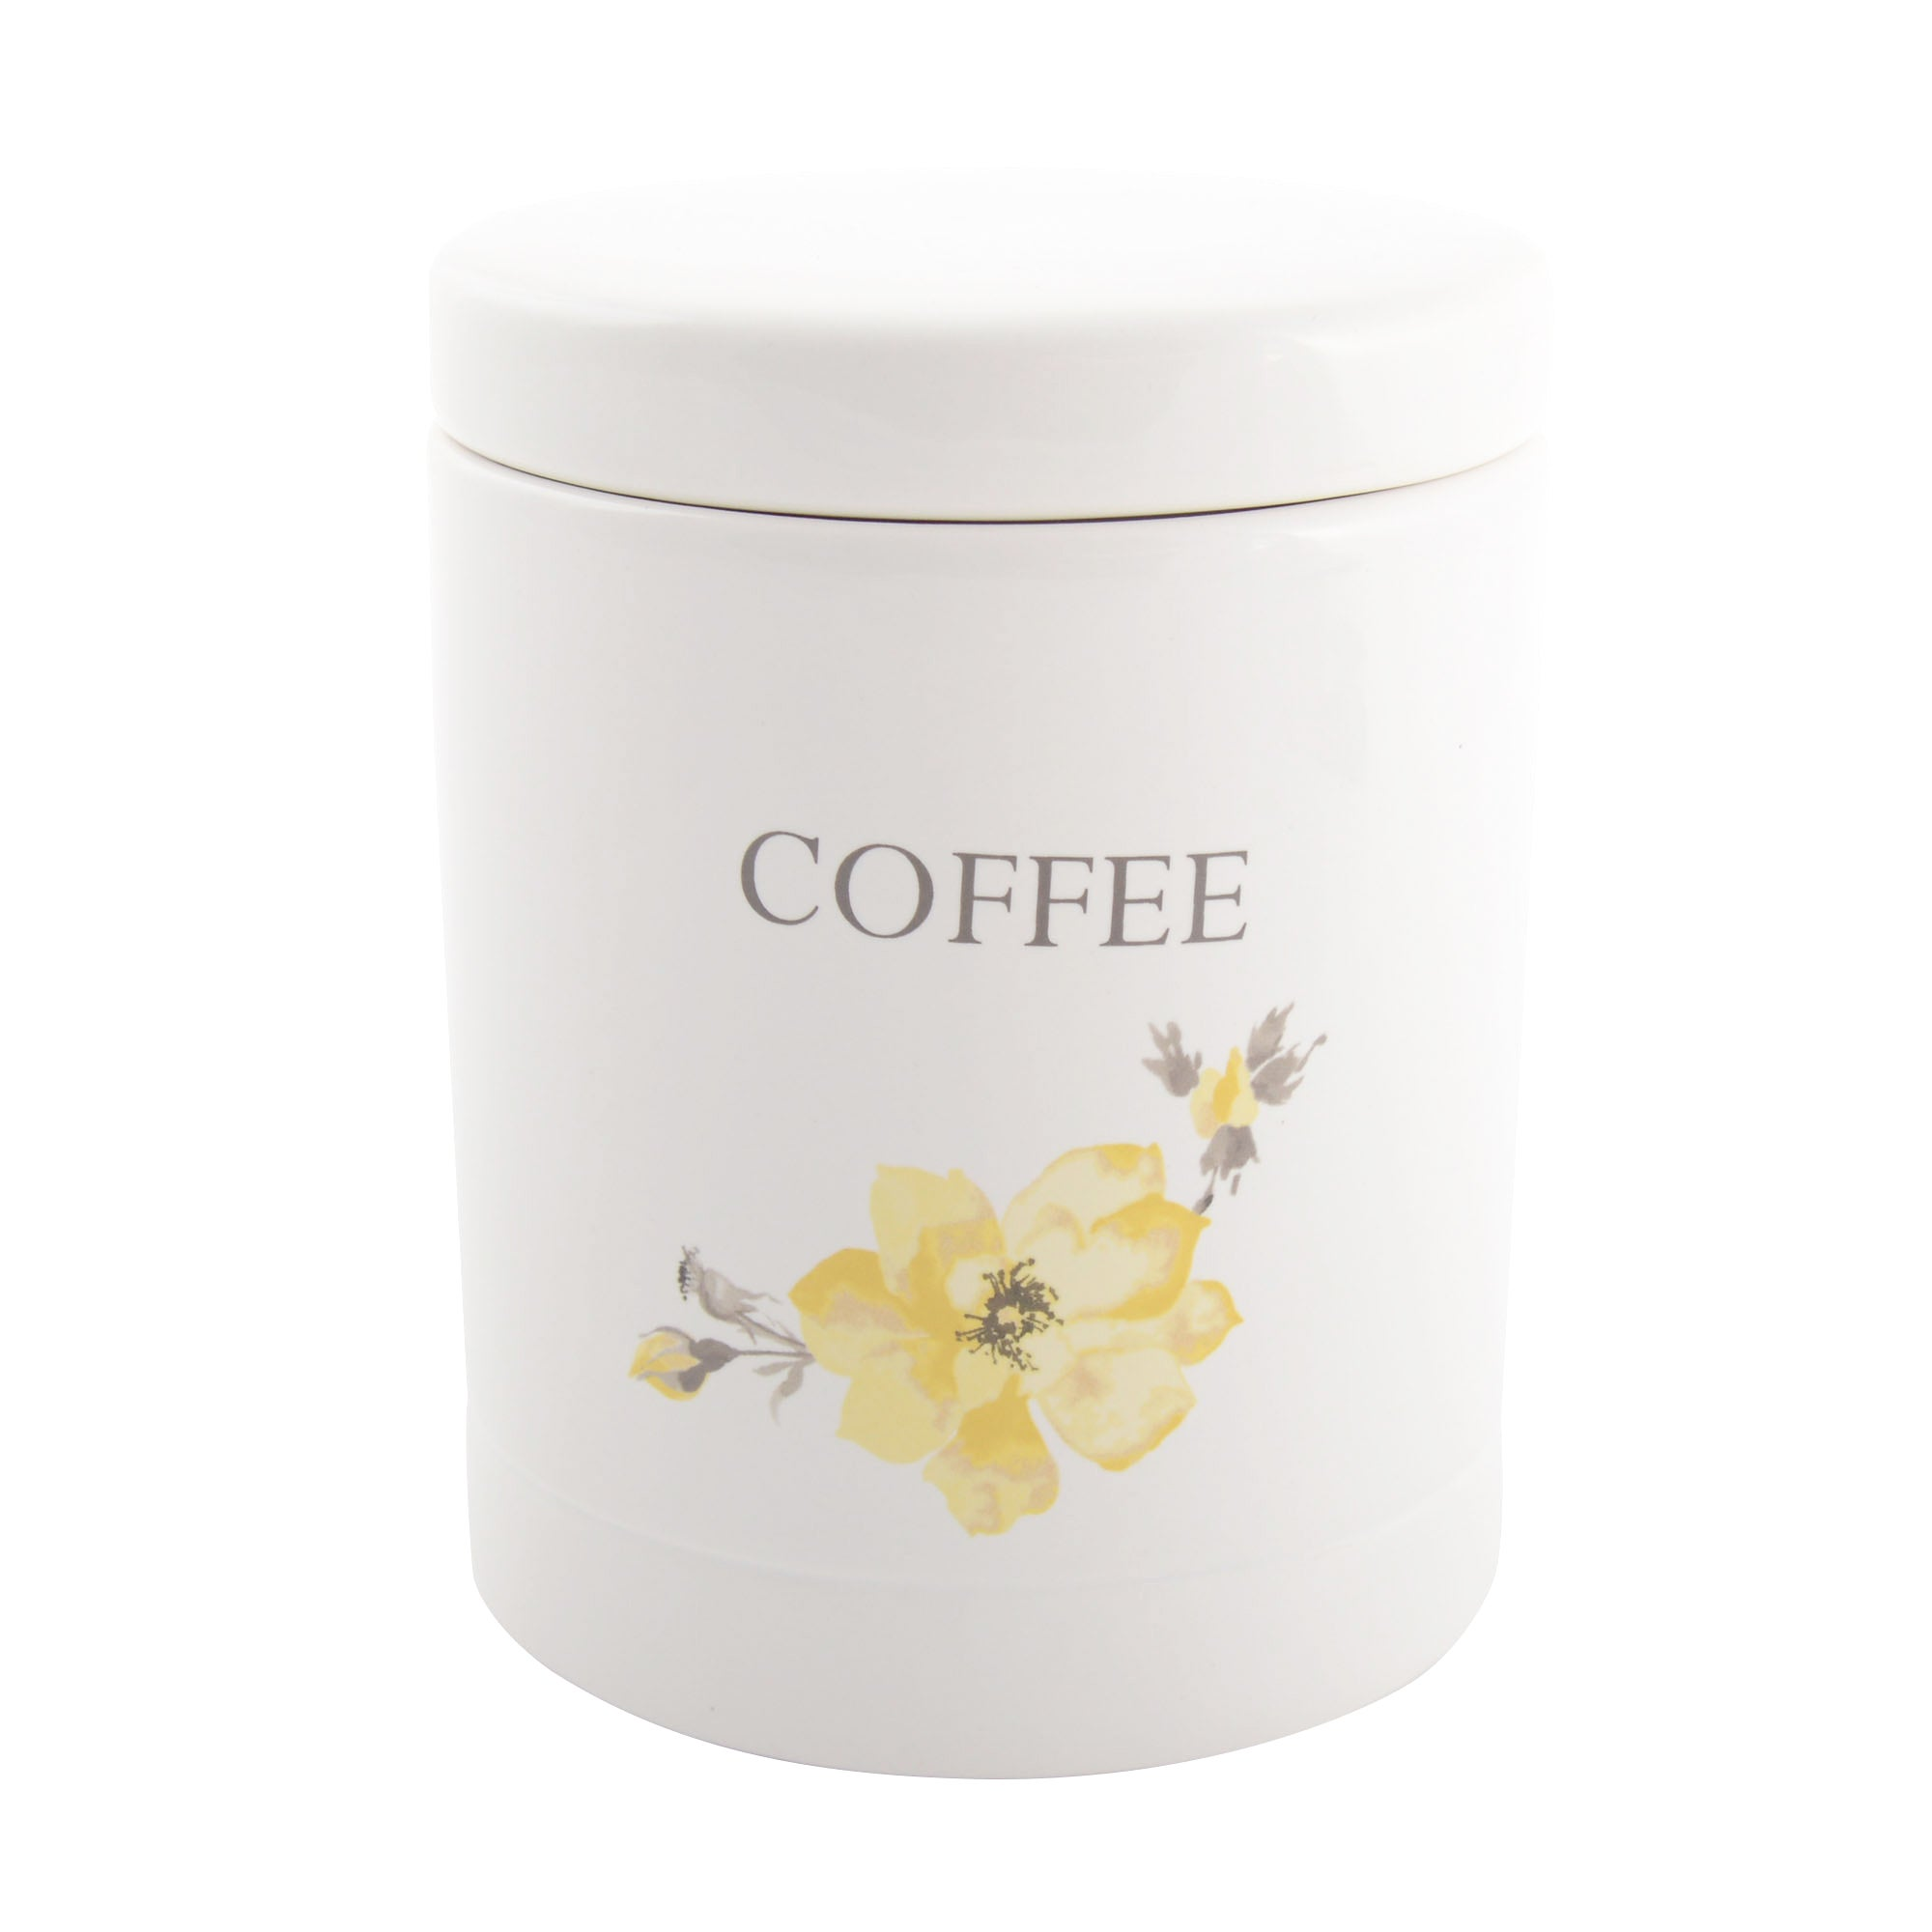 Meadow Blossom Collection Coffee Storage Jar